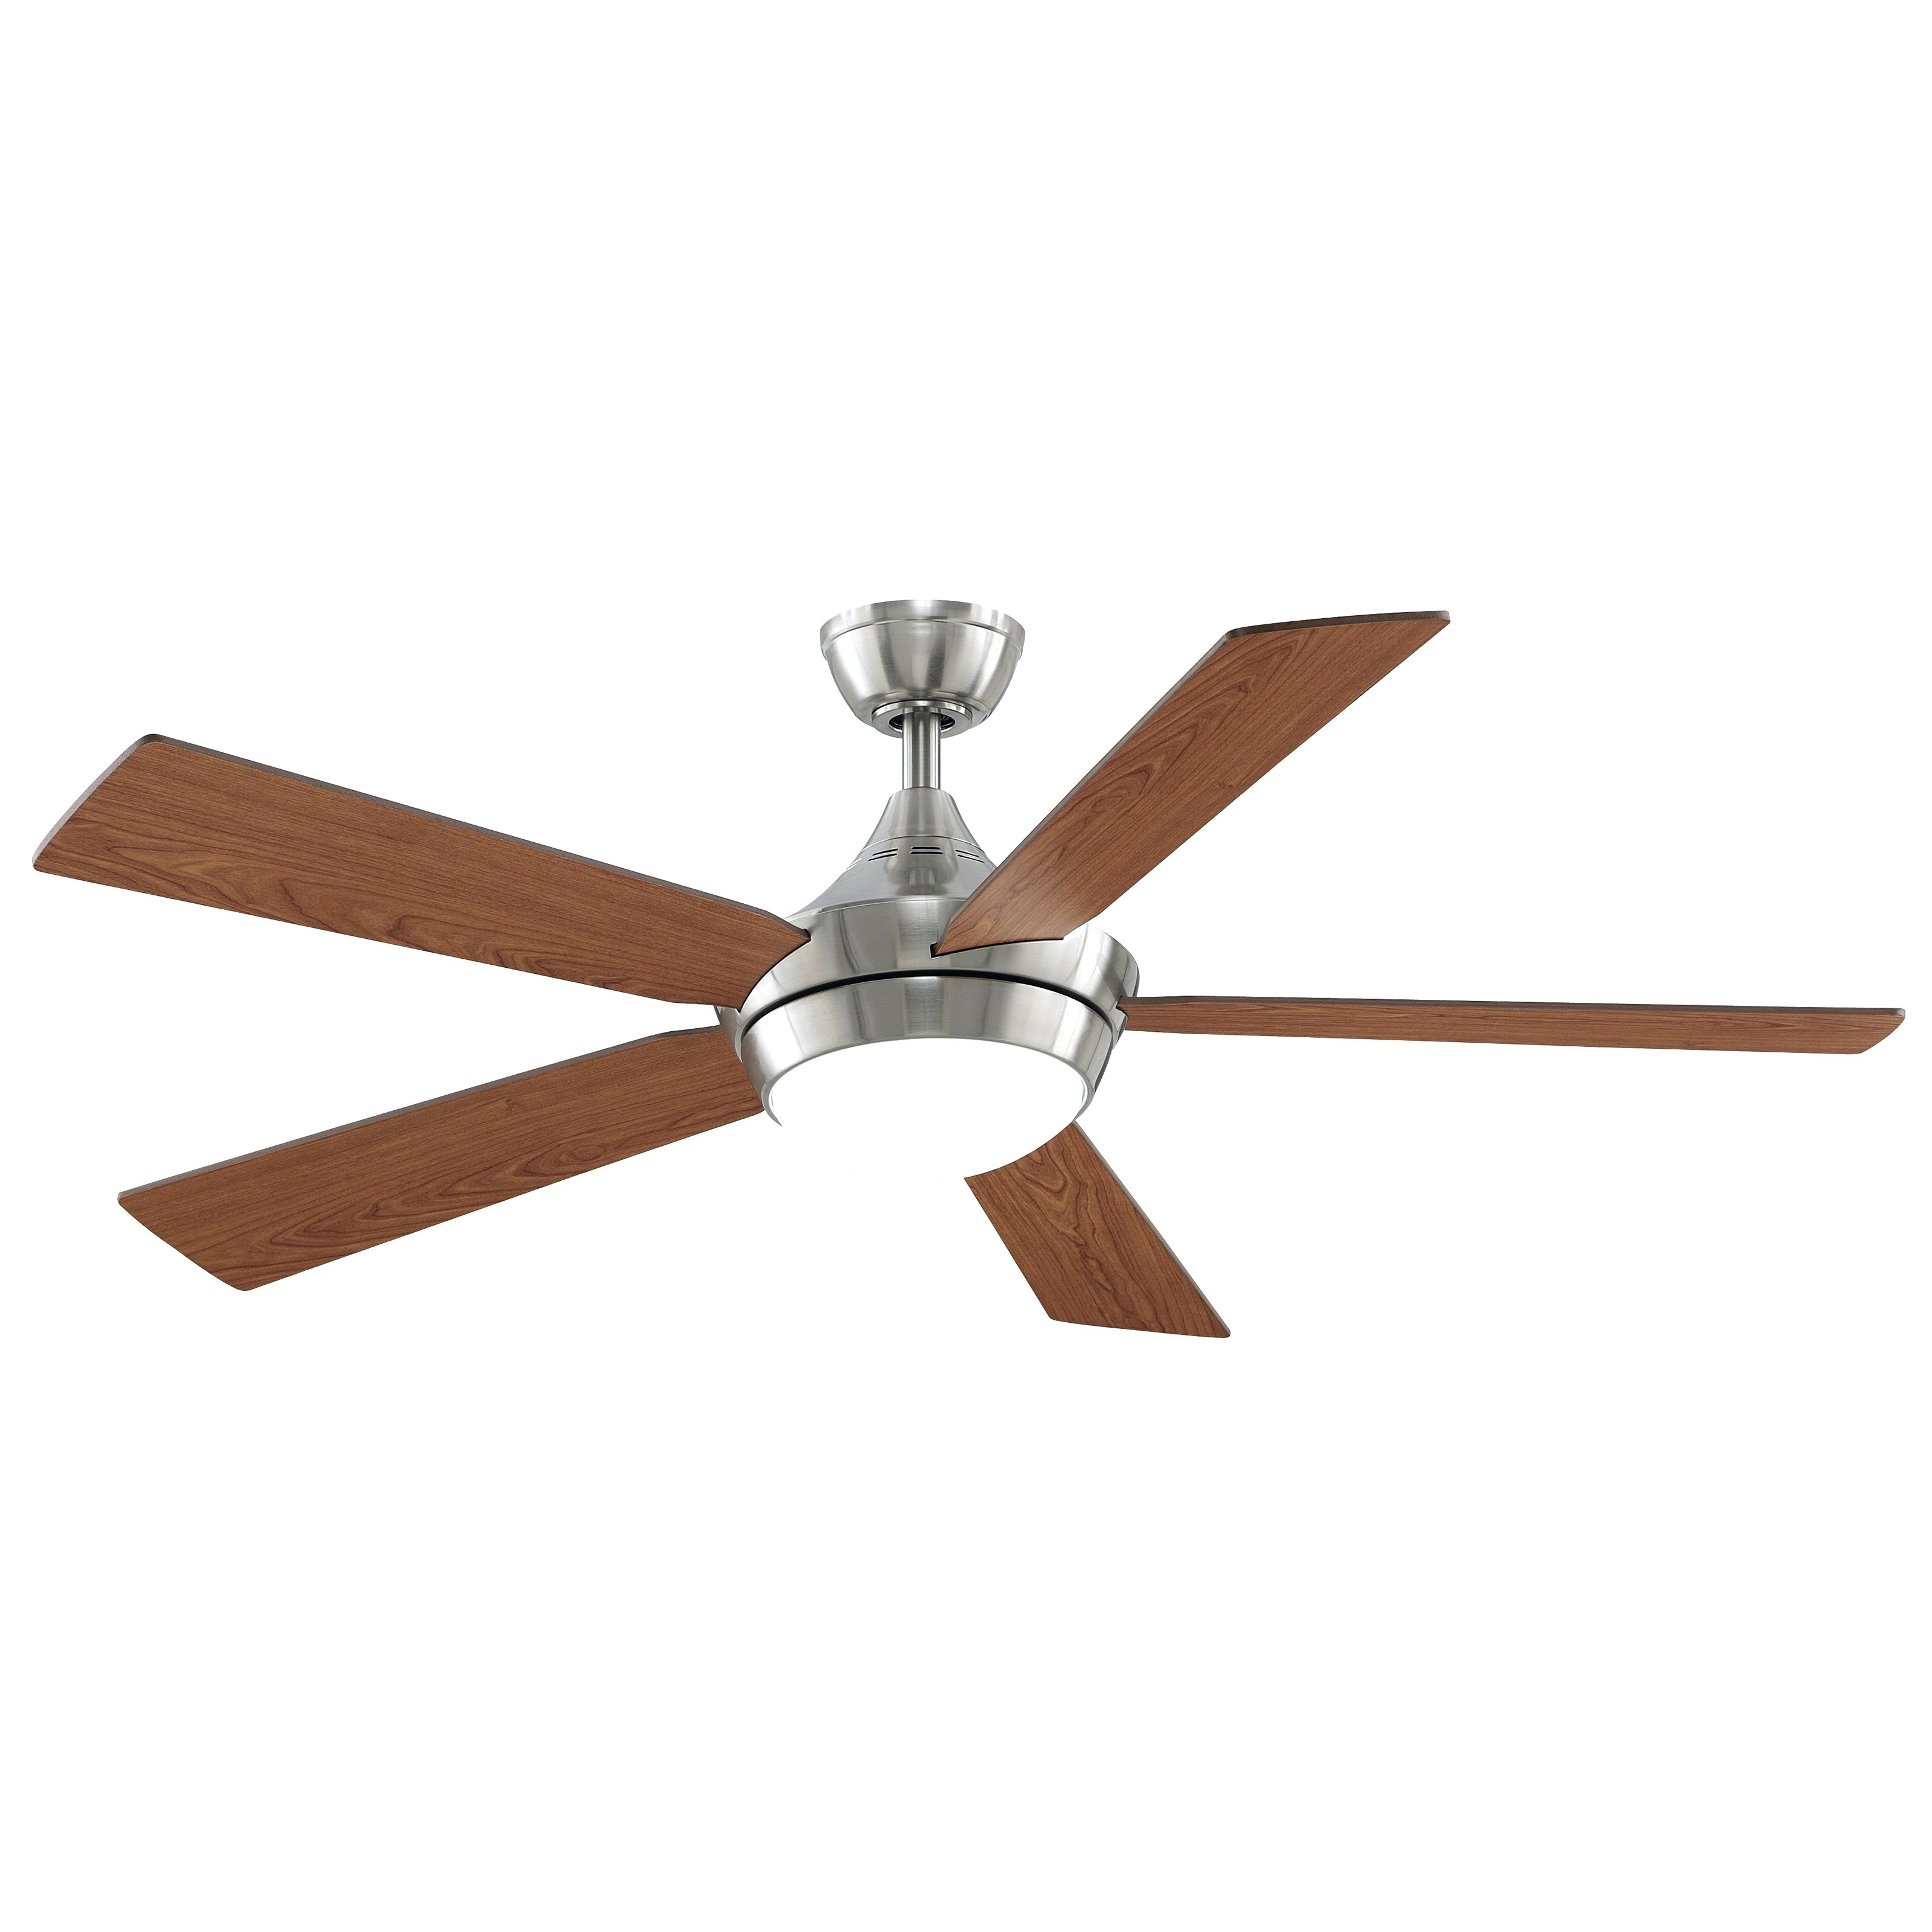 Outdoor Ceiling Fans At Bunnings Within Well Known Mercator Ceiling Fans Bunnings • Ceiling Fans Ideas (Gallery 3 of 20)